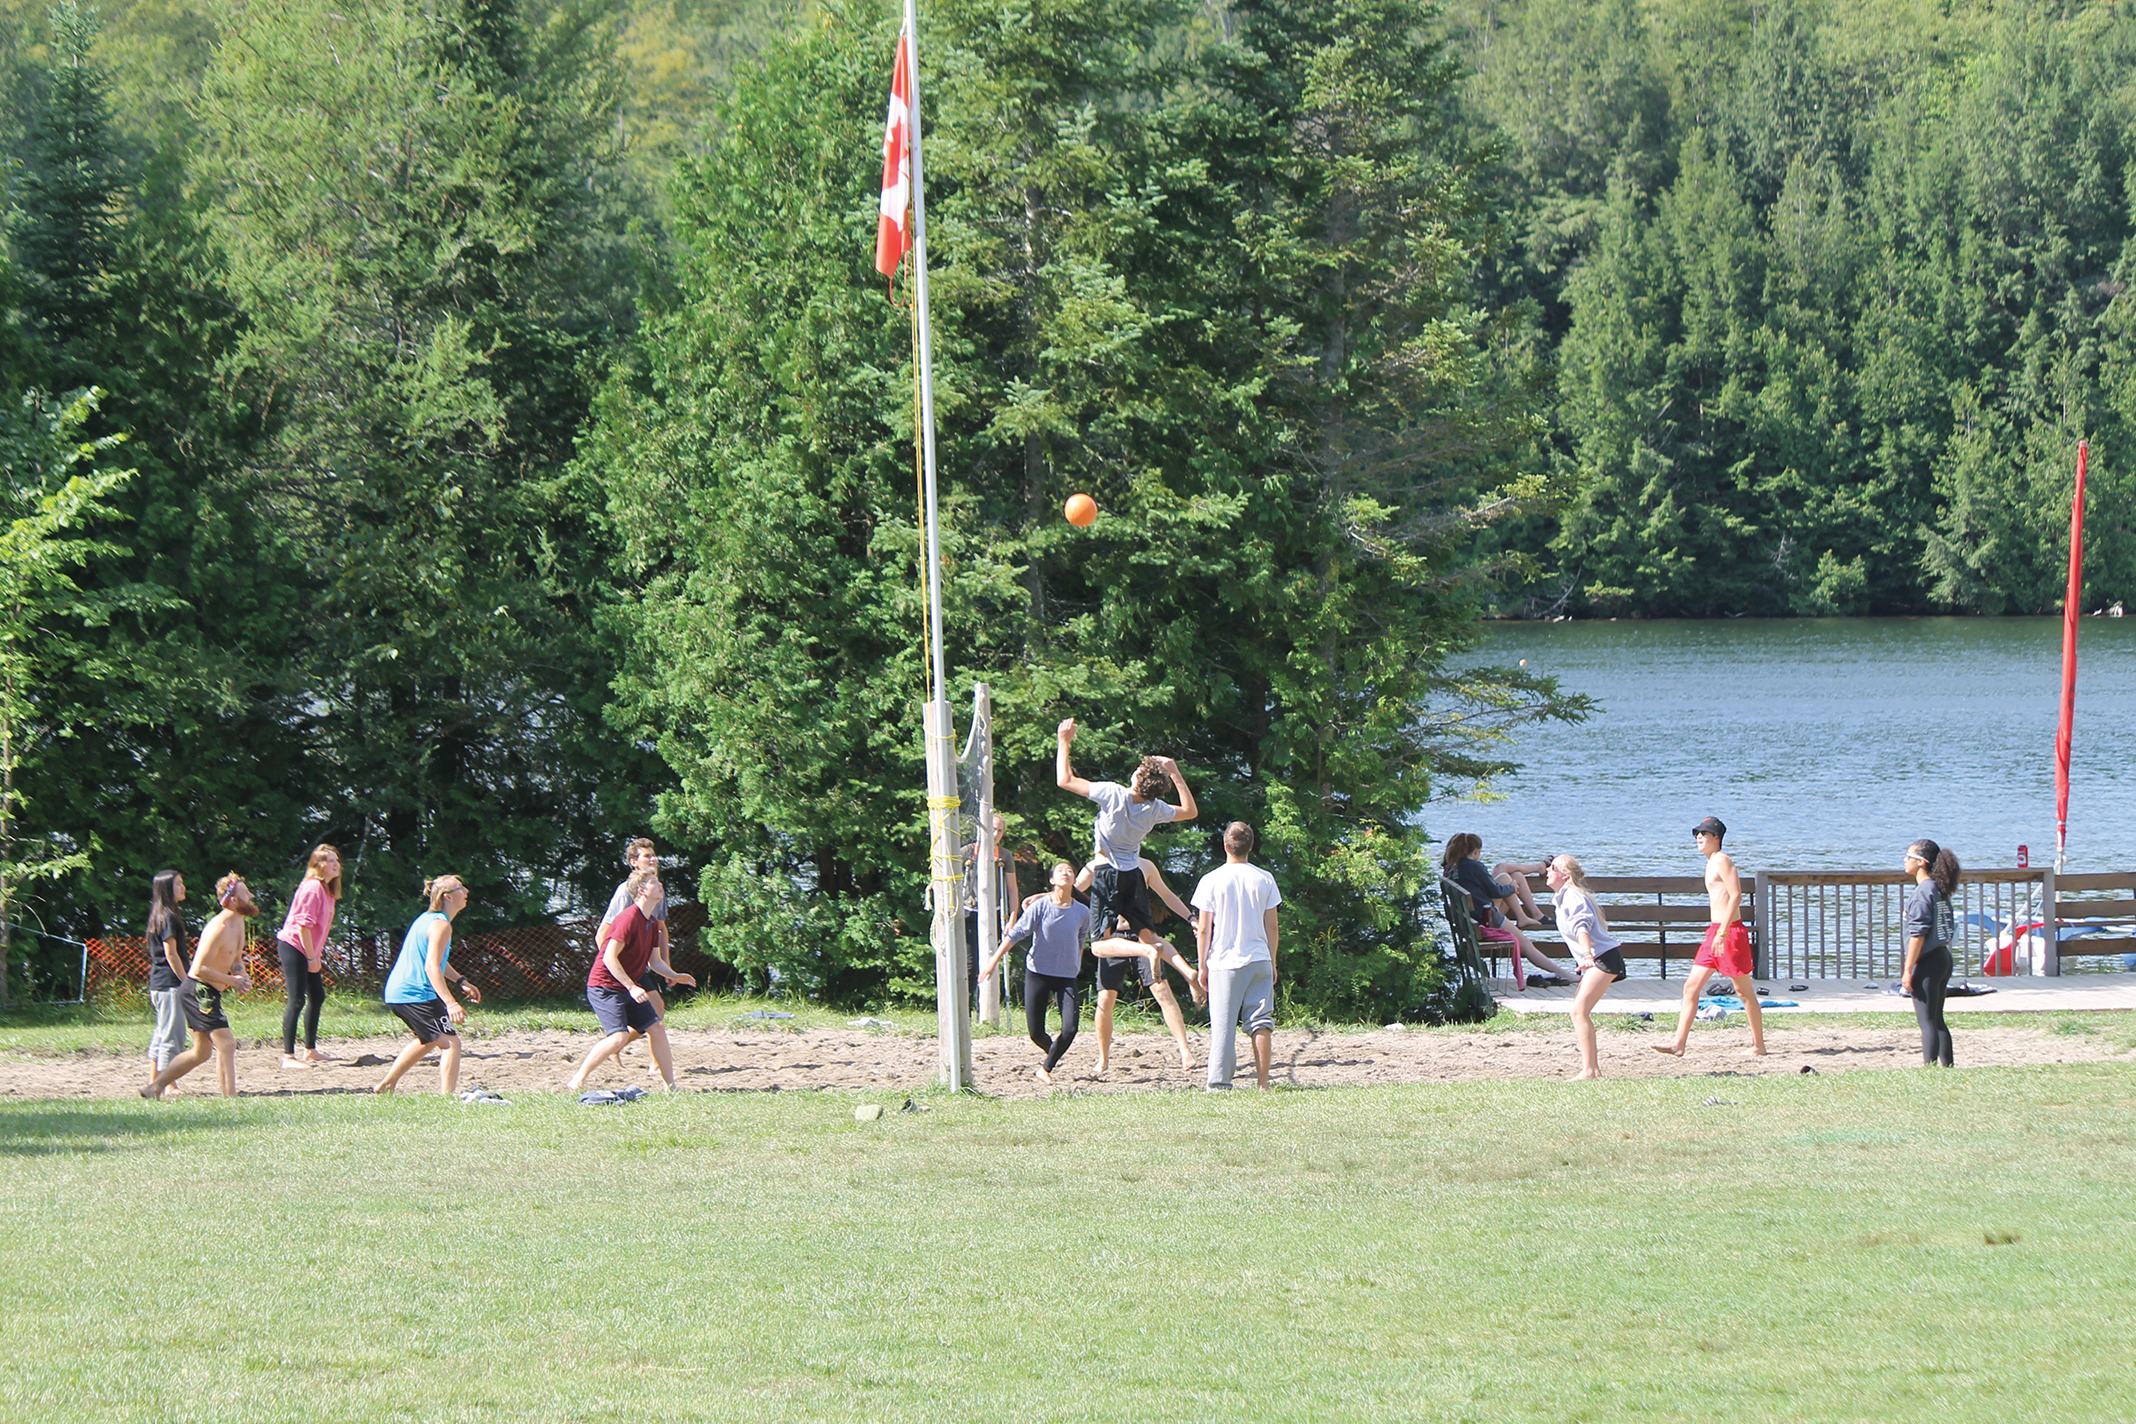 Summer camp isn't just for kids. Working as a camp counsellor is an excellent way for young people to build leadership and teamwork skills. Being a camp counsellor looks excellent on university applications. Photo Courtesy of Camp Can Aqua.